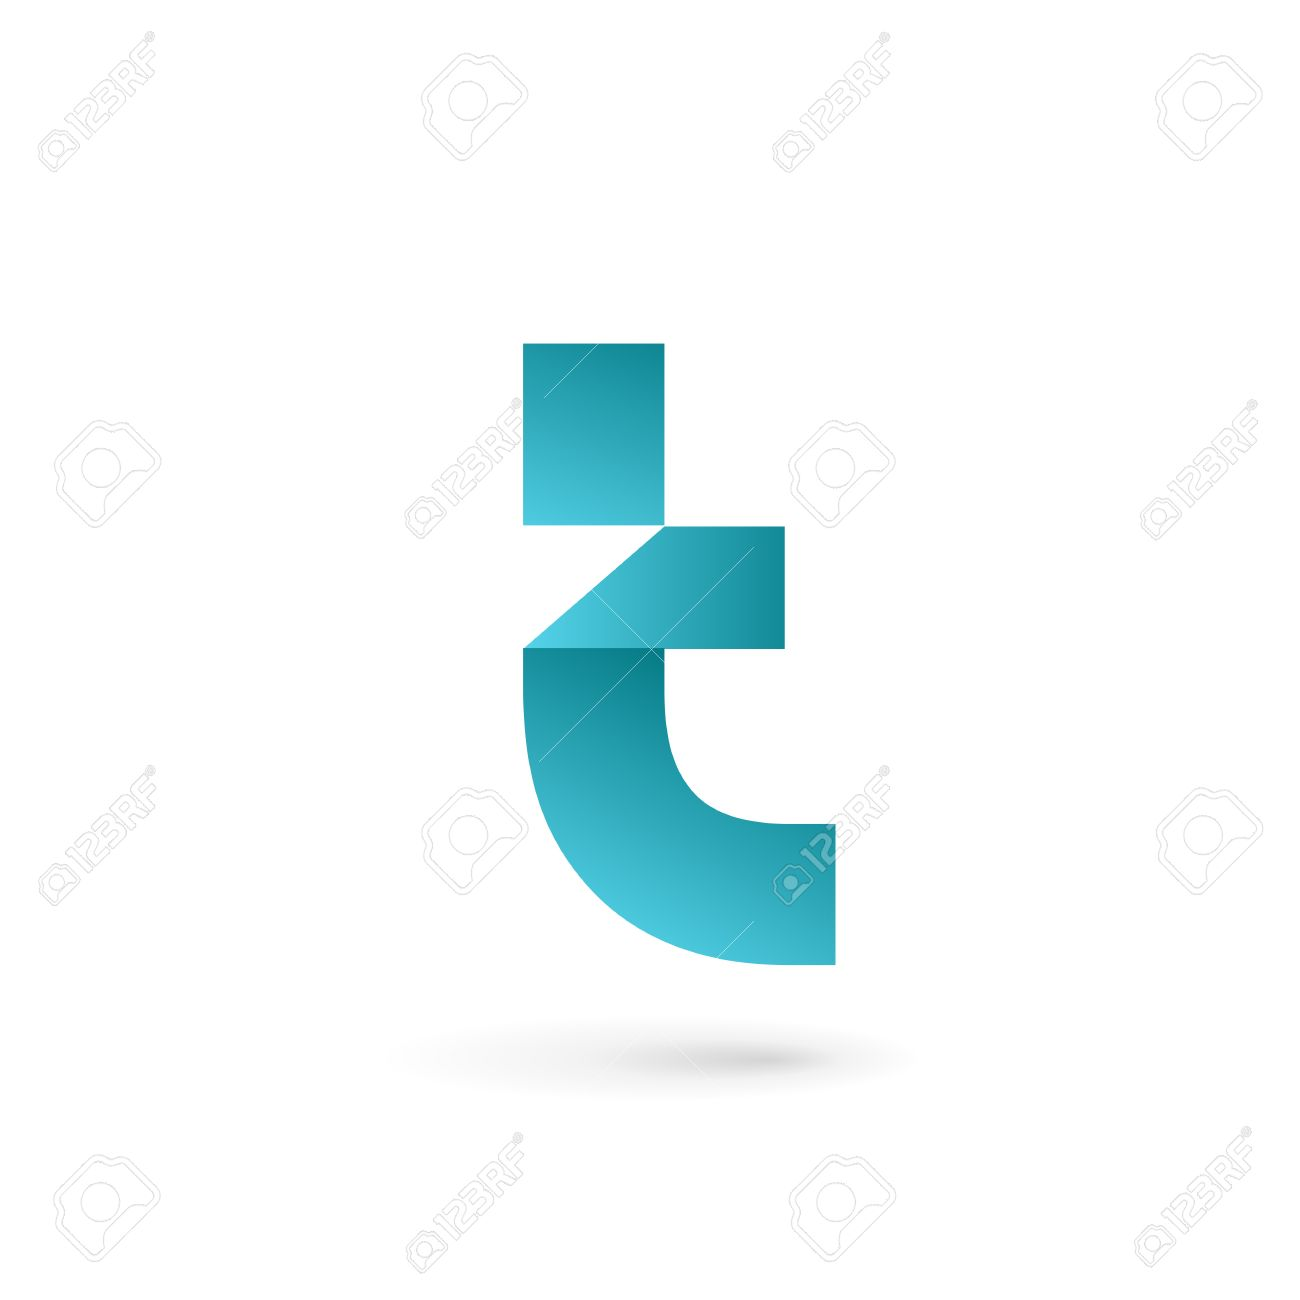 letter t logo icon design template elements stock vector 41985938